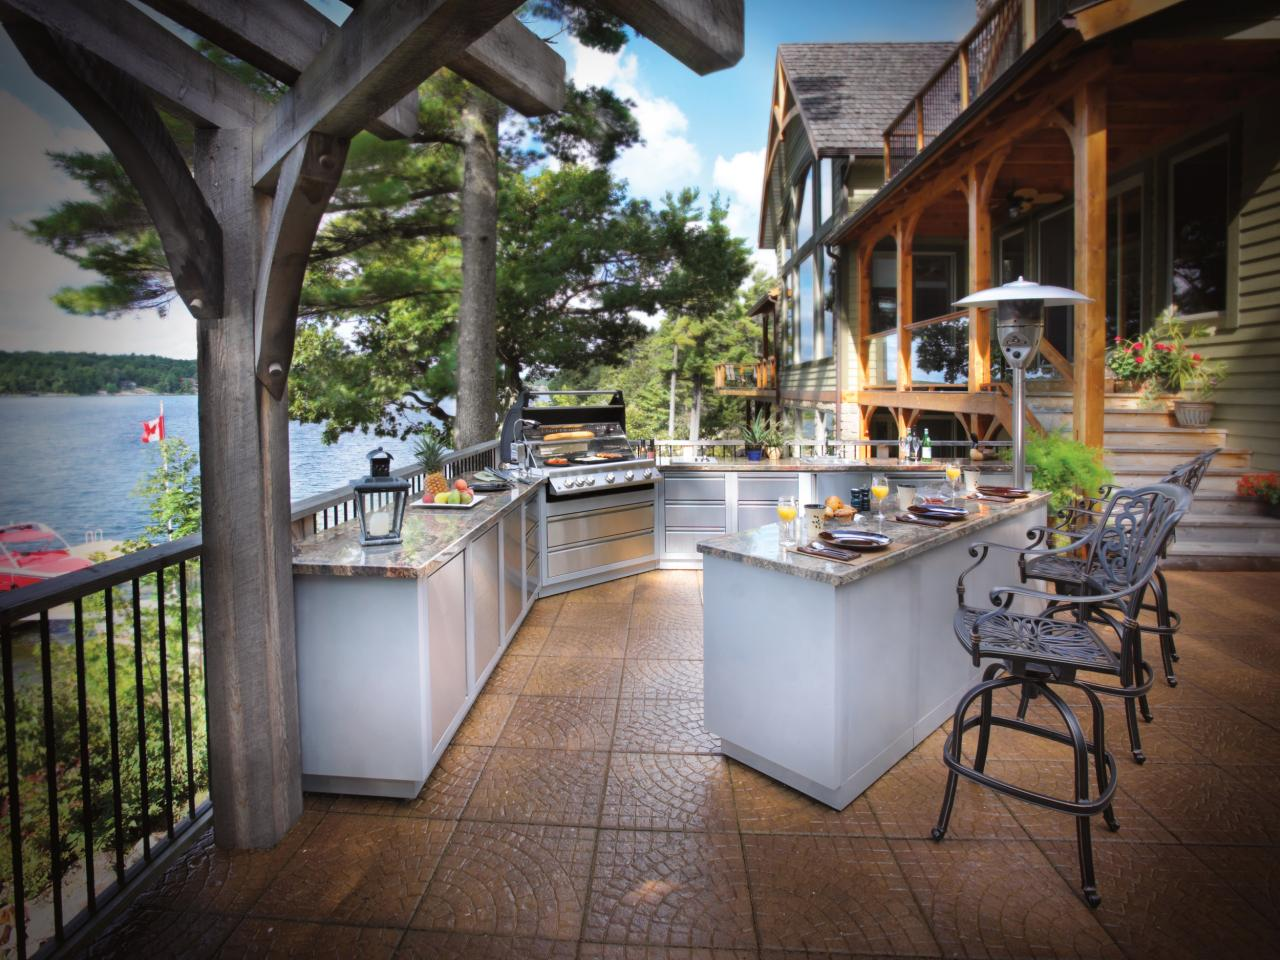 outdoor kitchen pictures photo - 3